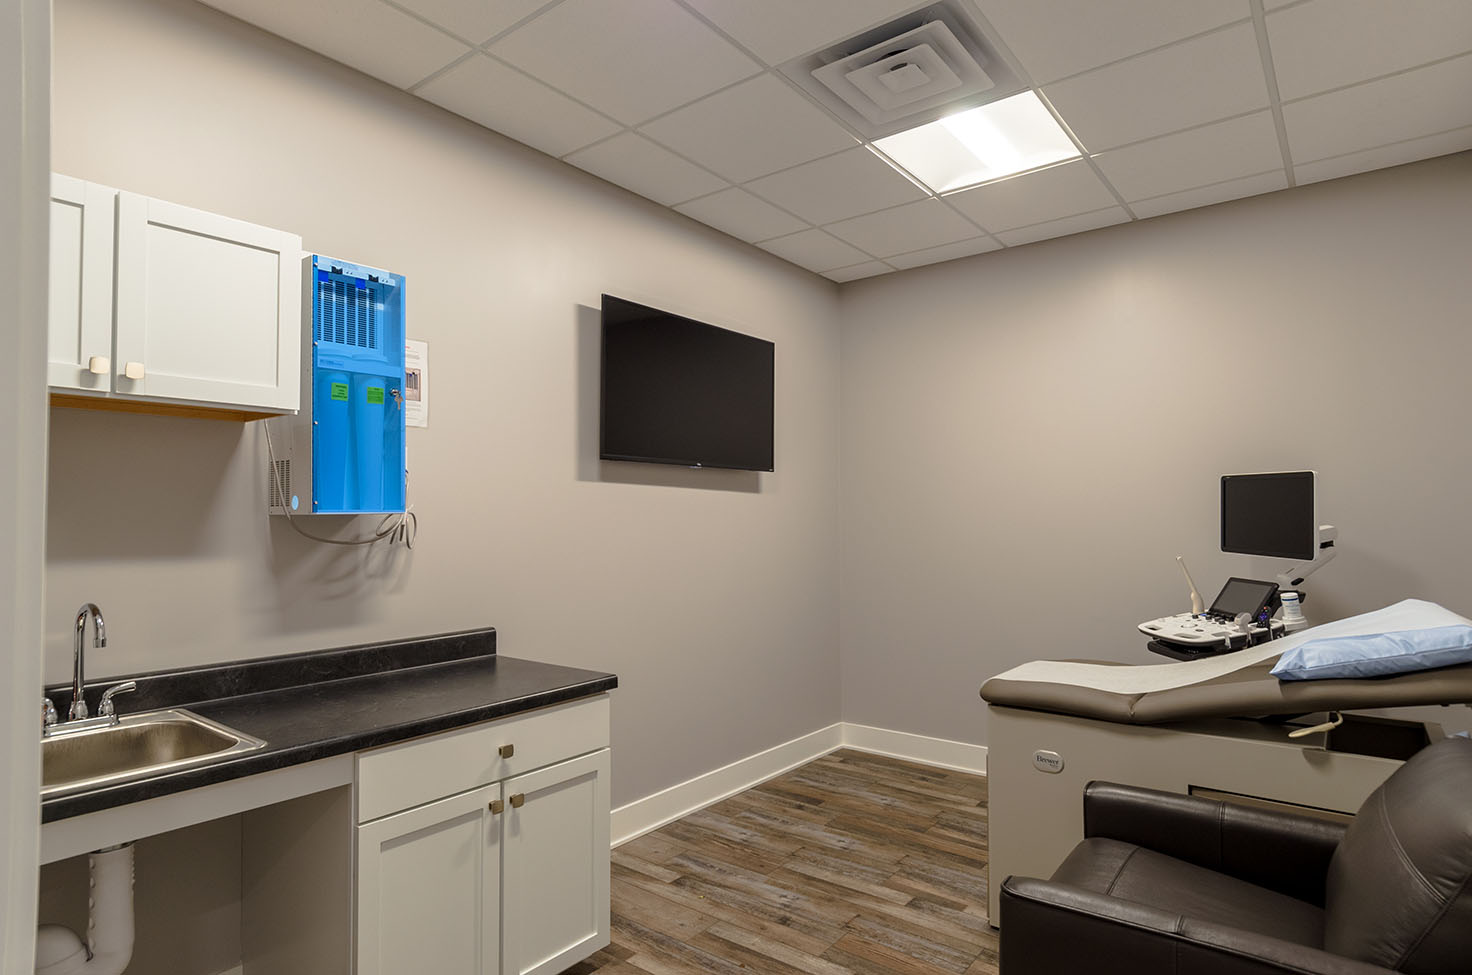 Exam Room at Women's Healthcare Clinic